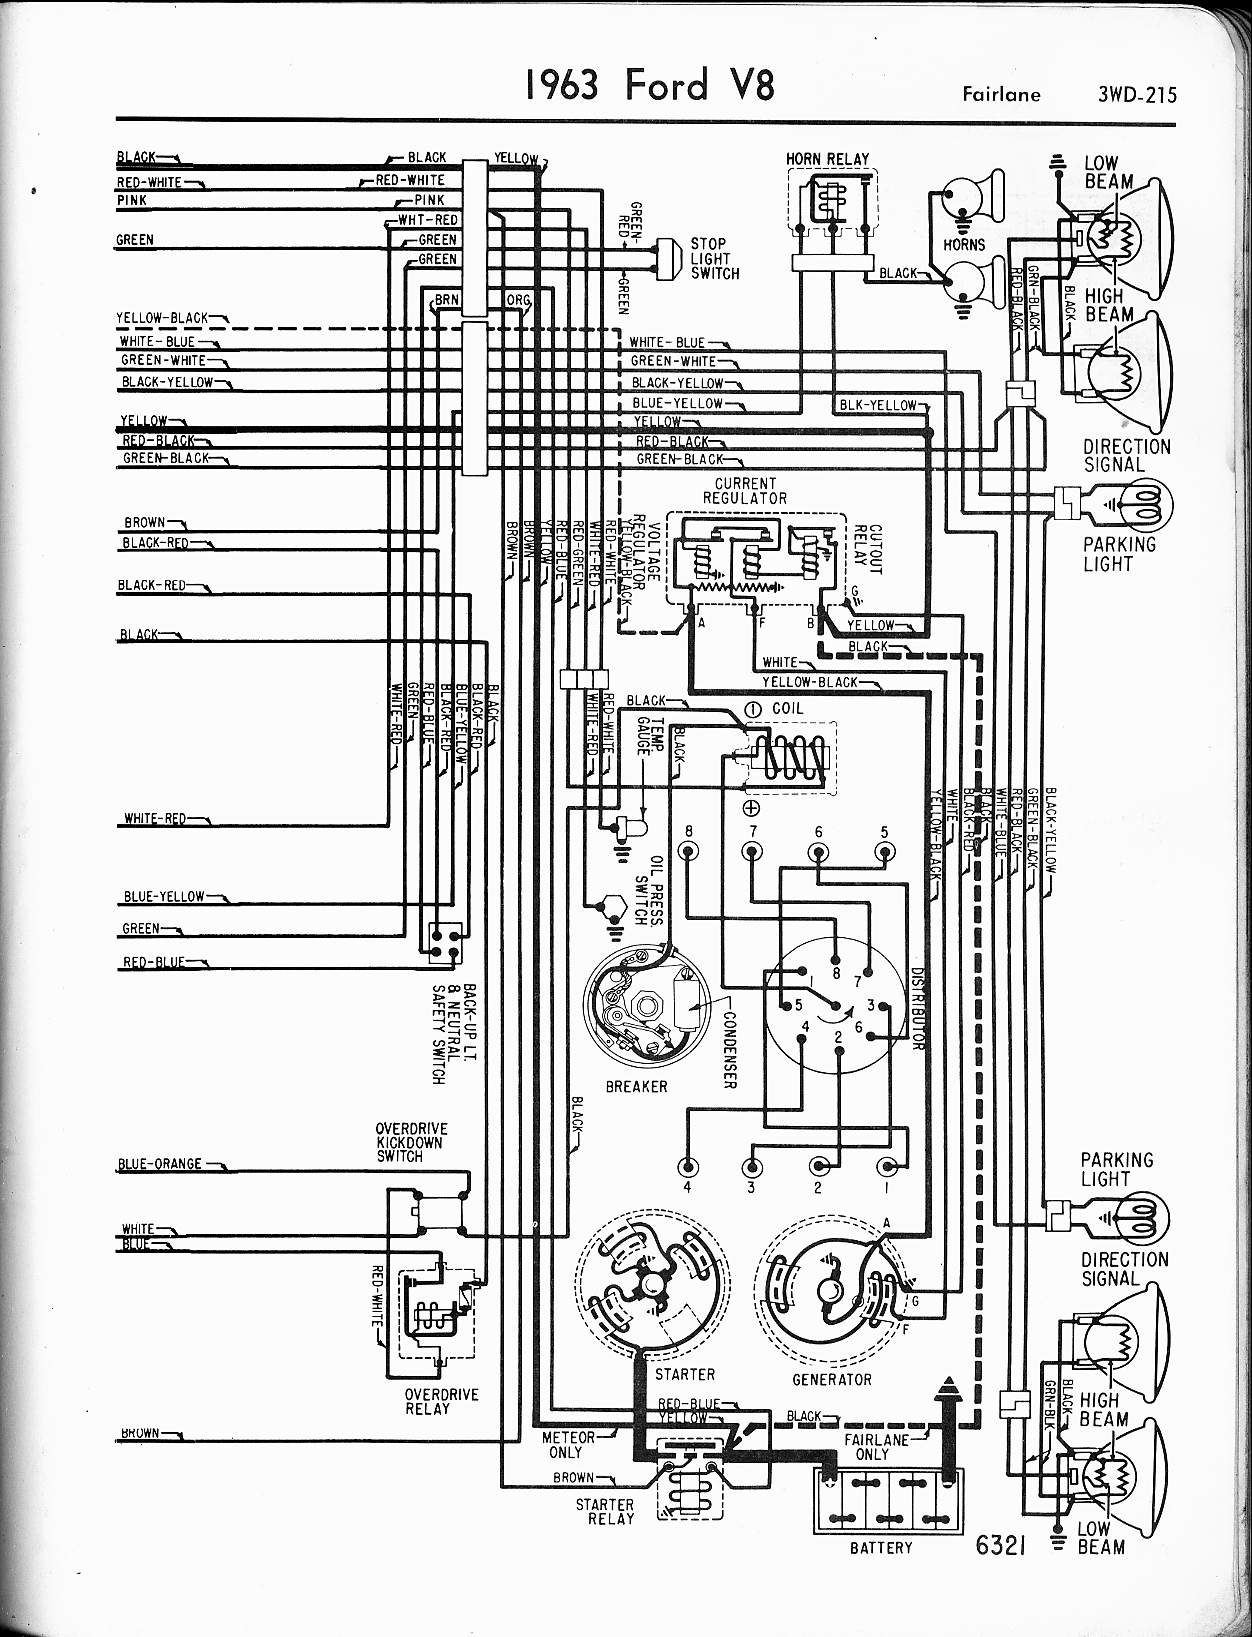 1964 Fairlane Wiring Diagram FULL HD Version Wiring Diagram -  TORIDIAGRAM.LRPOL.FRDiagram Database - LRPOL.FR